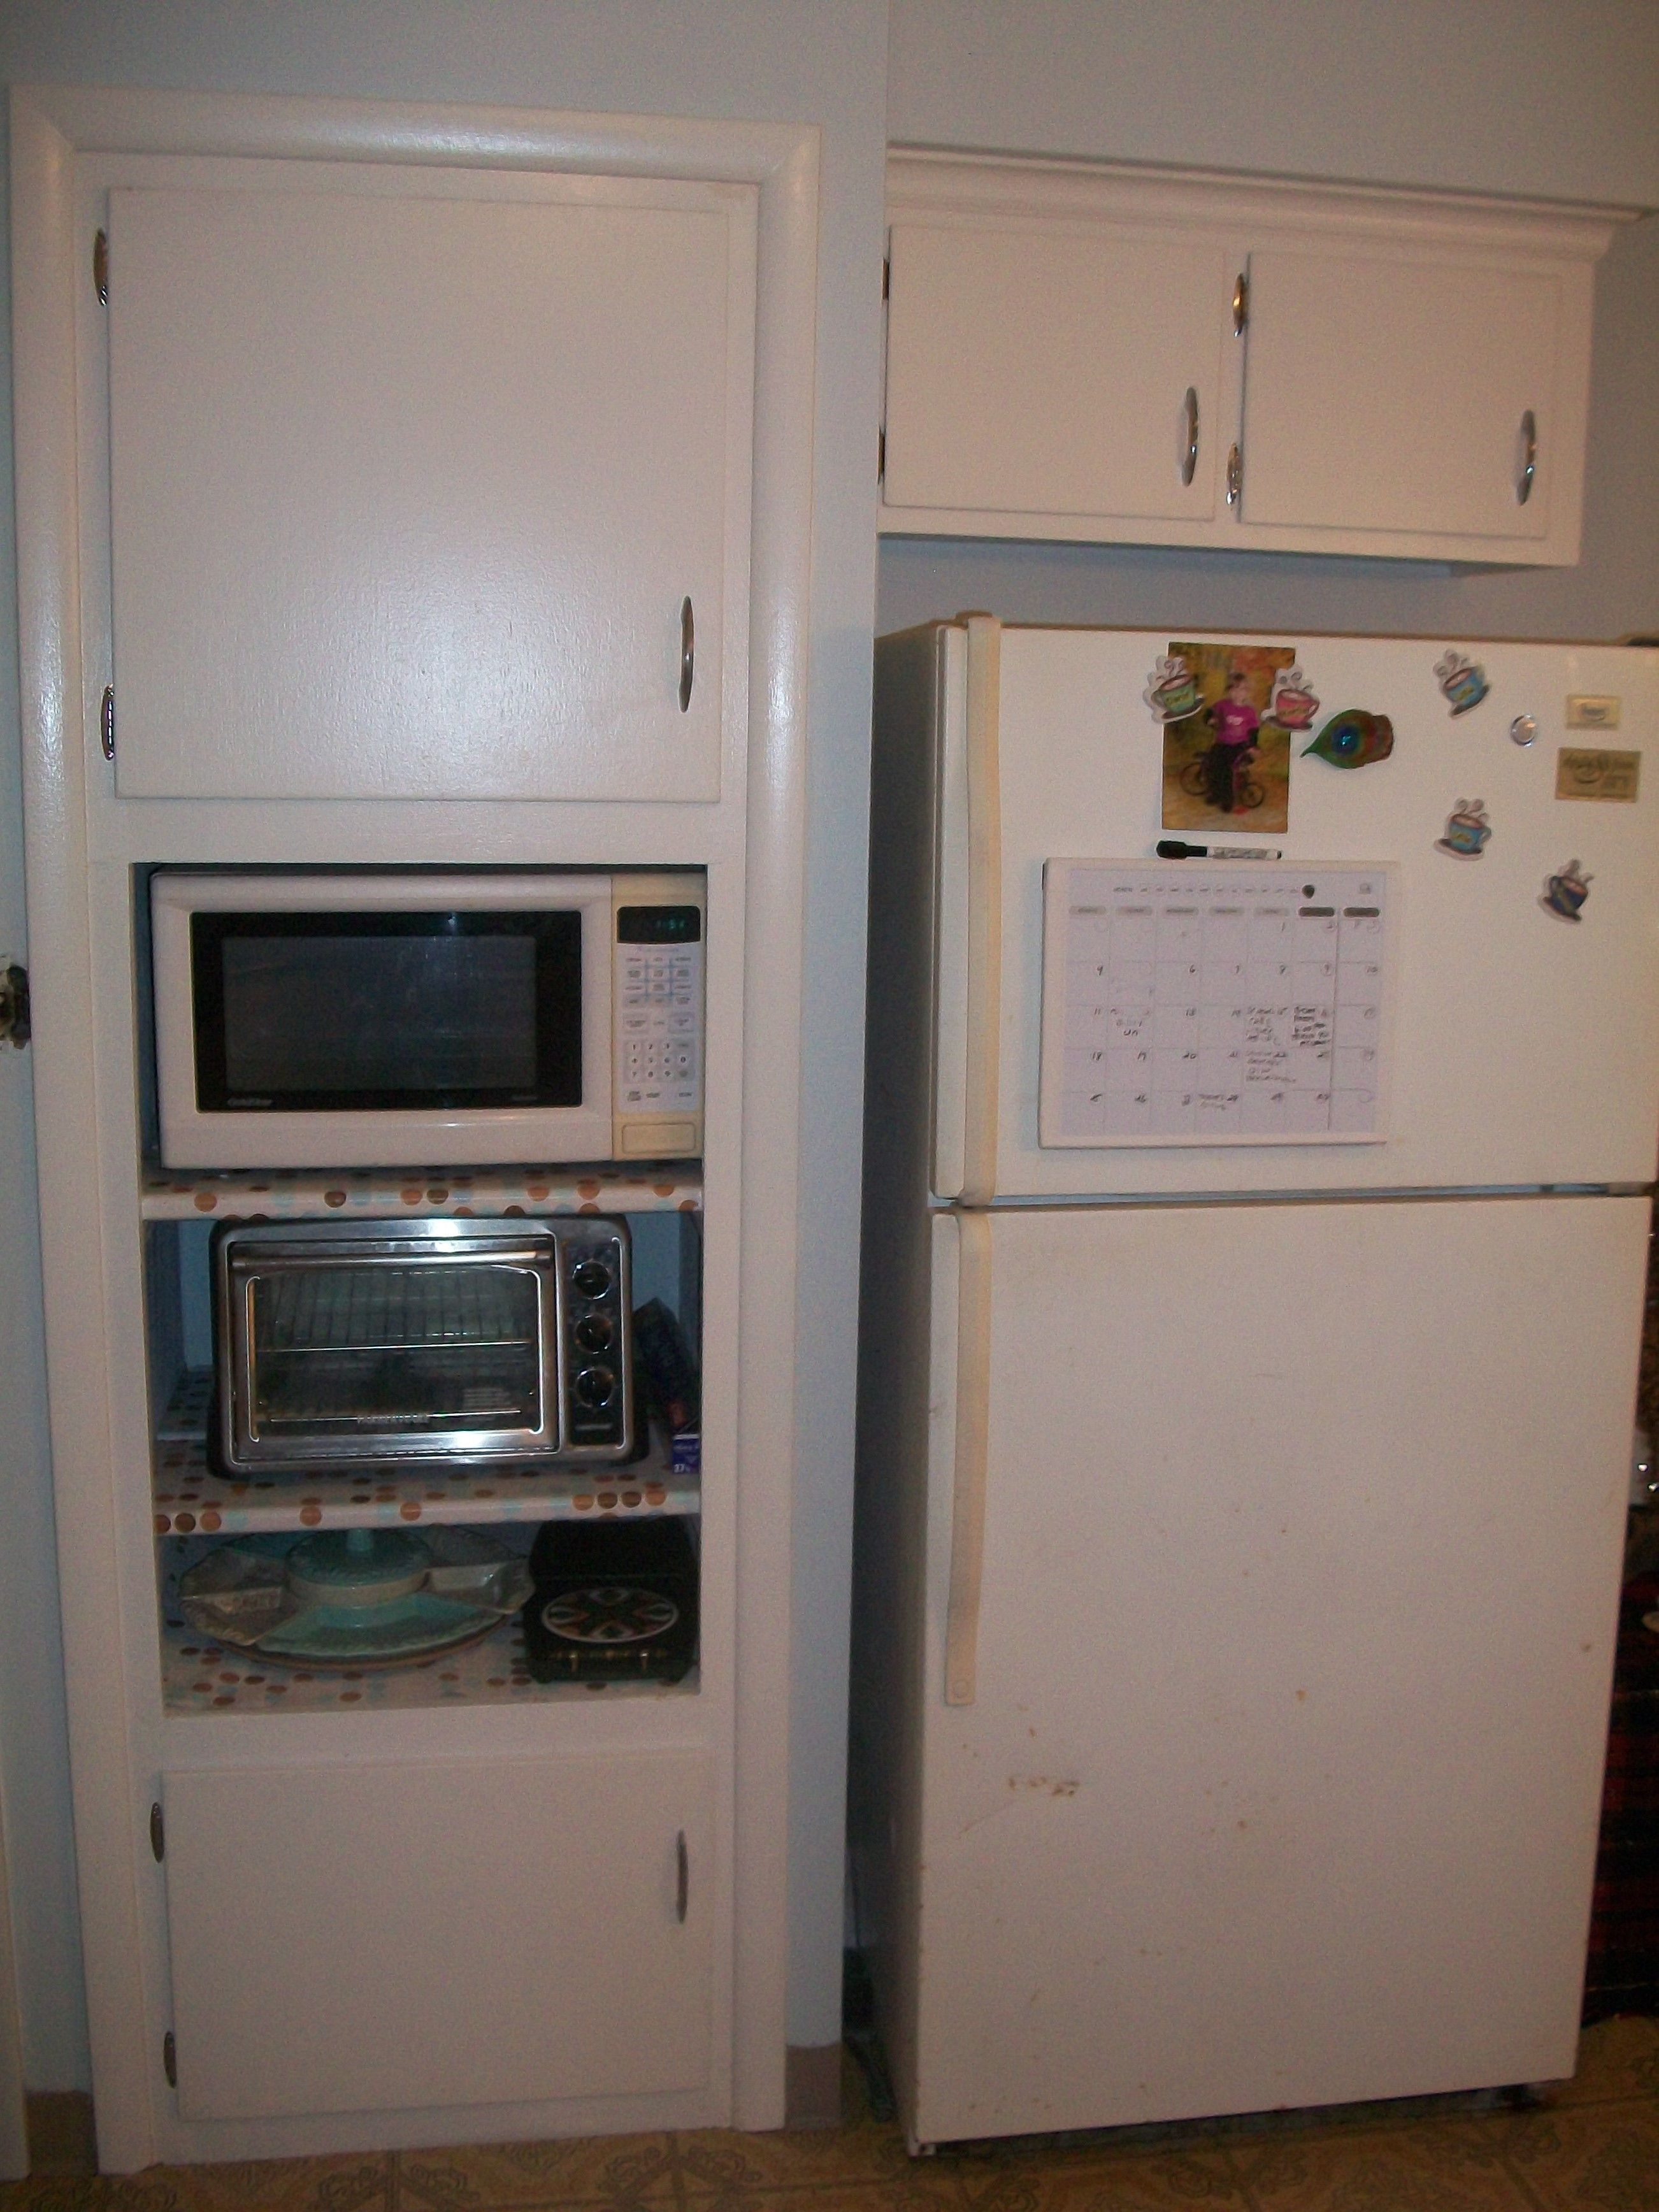 Replaced Built In Oven With Shelves For The Microwave And Toaster Still Have To Replace Old